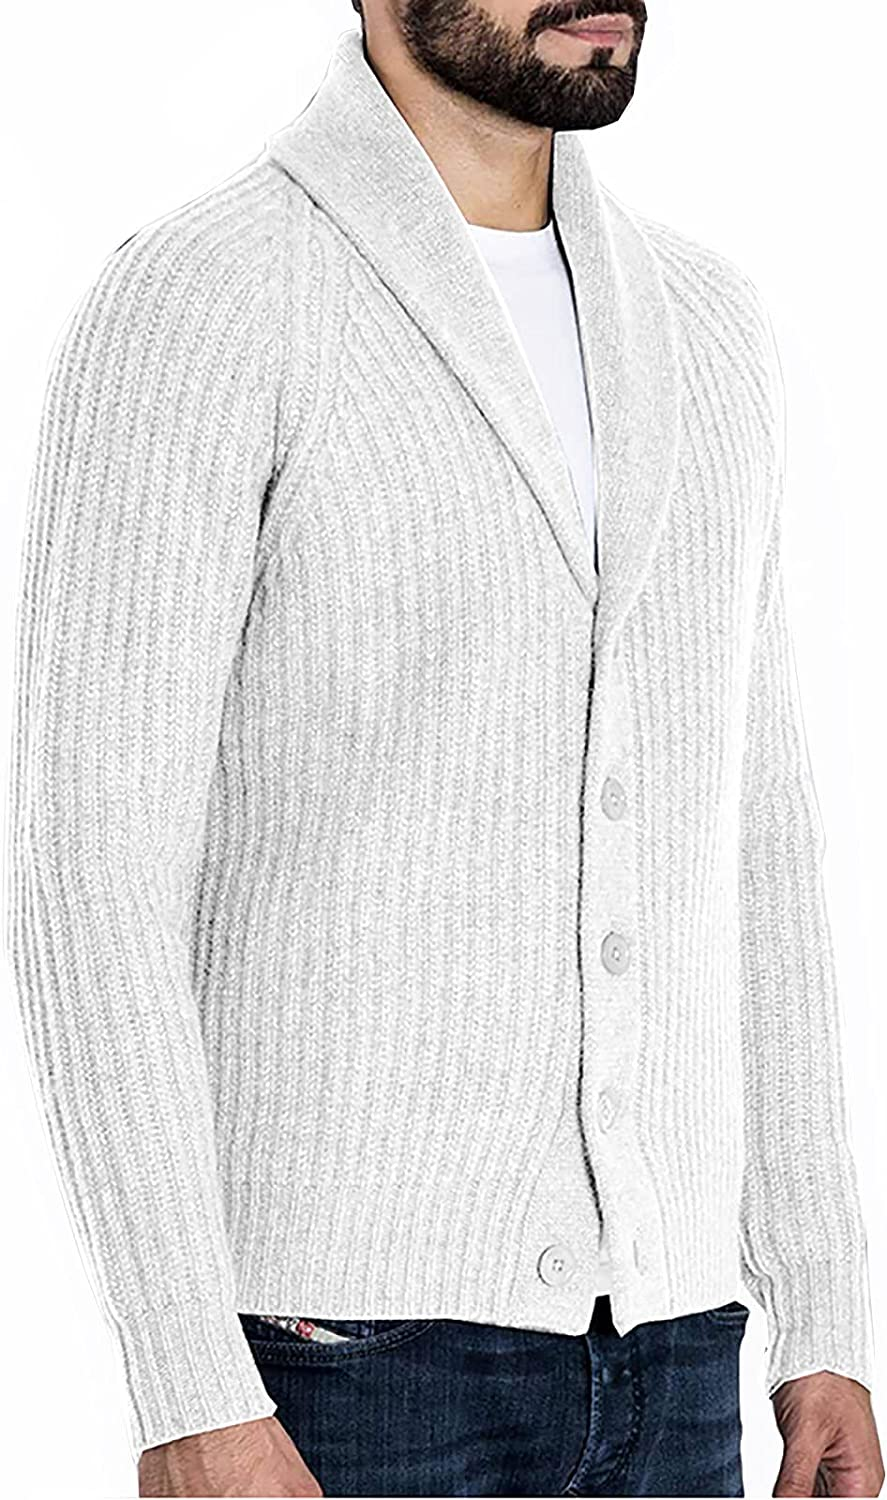 Men's Knitted Suit Sweater Fashion England Style Lapel Solid Button Long Sleeve Thermal Cardigan Coat Jacket